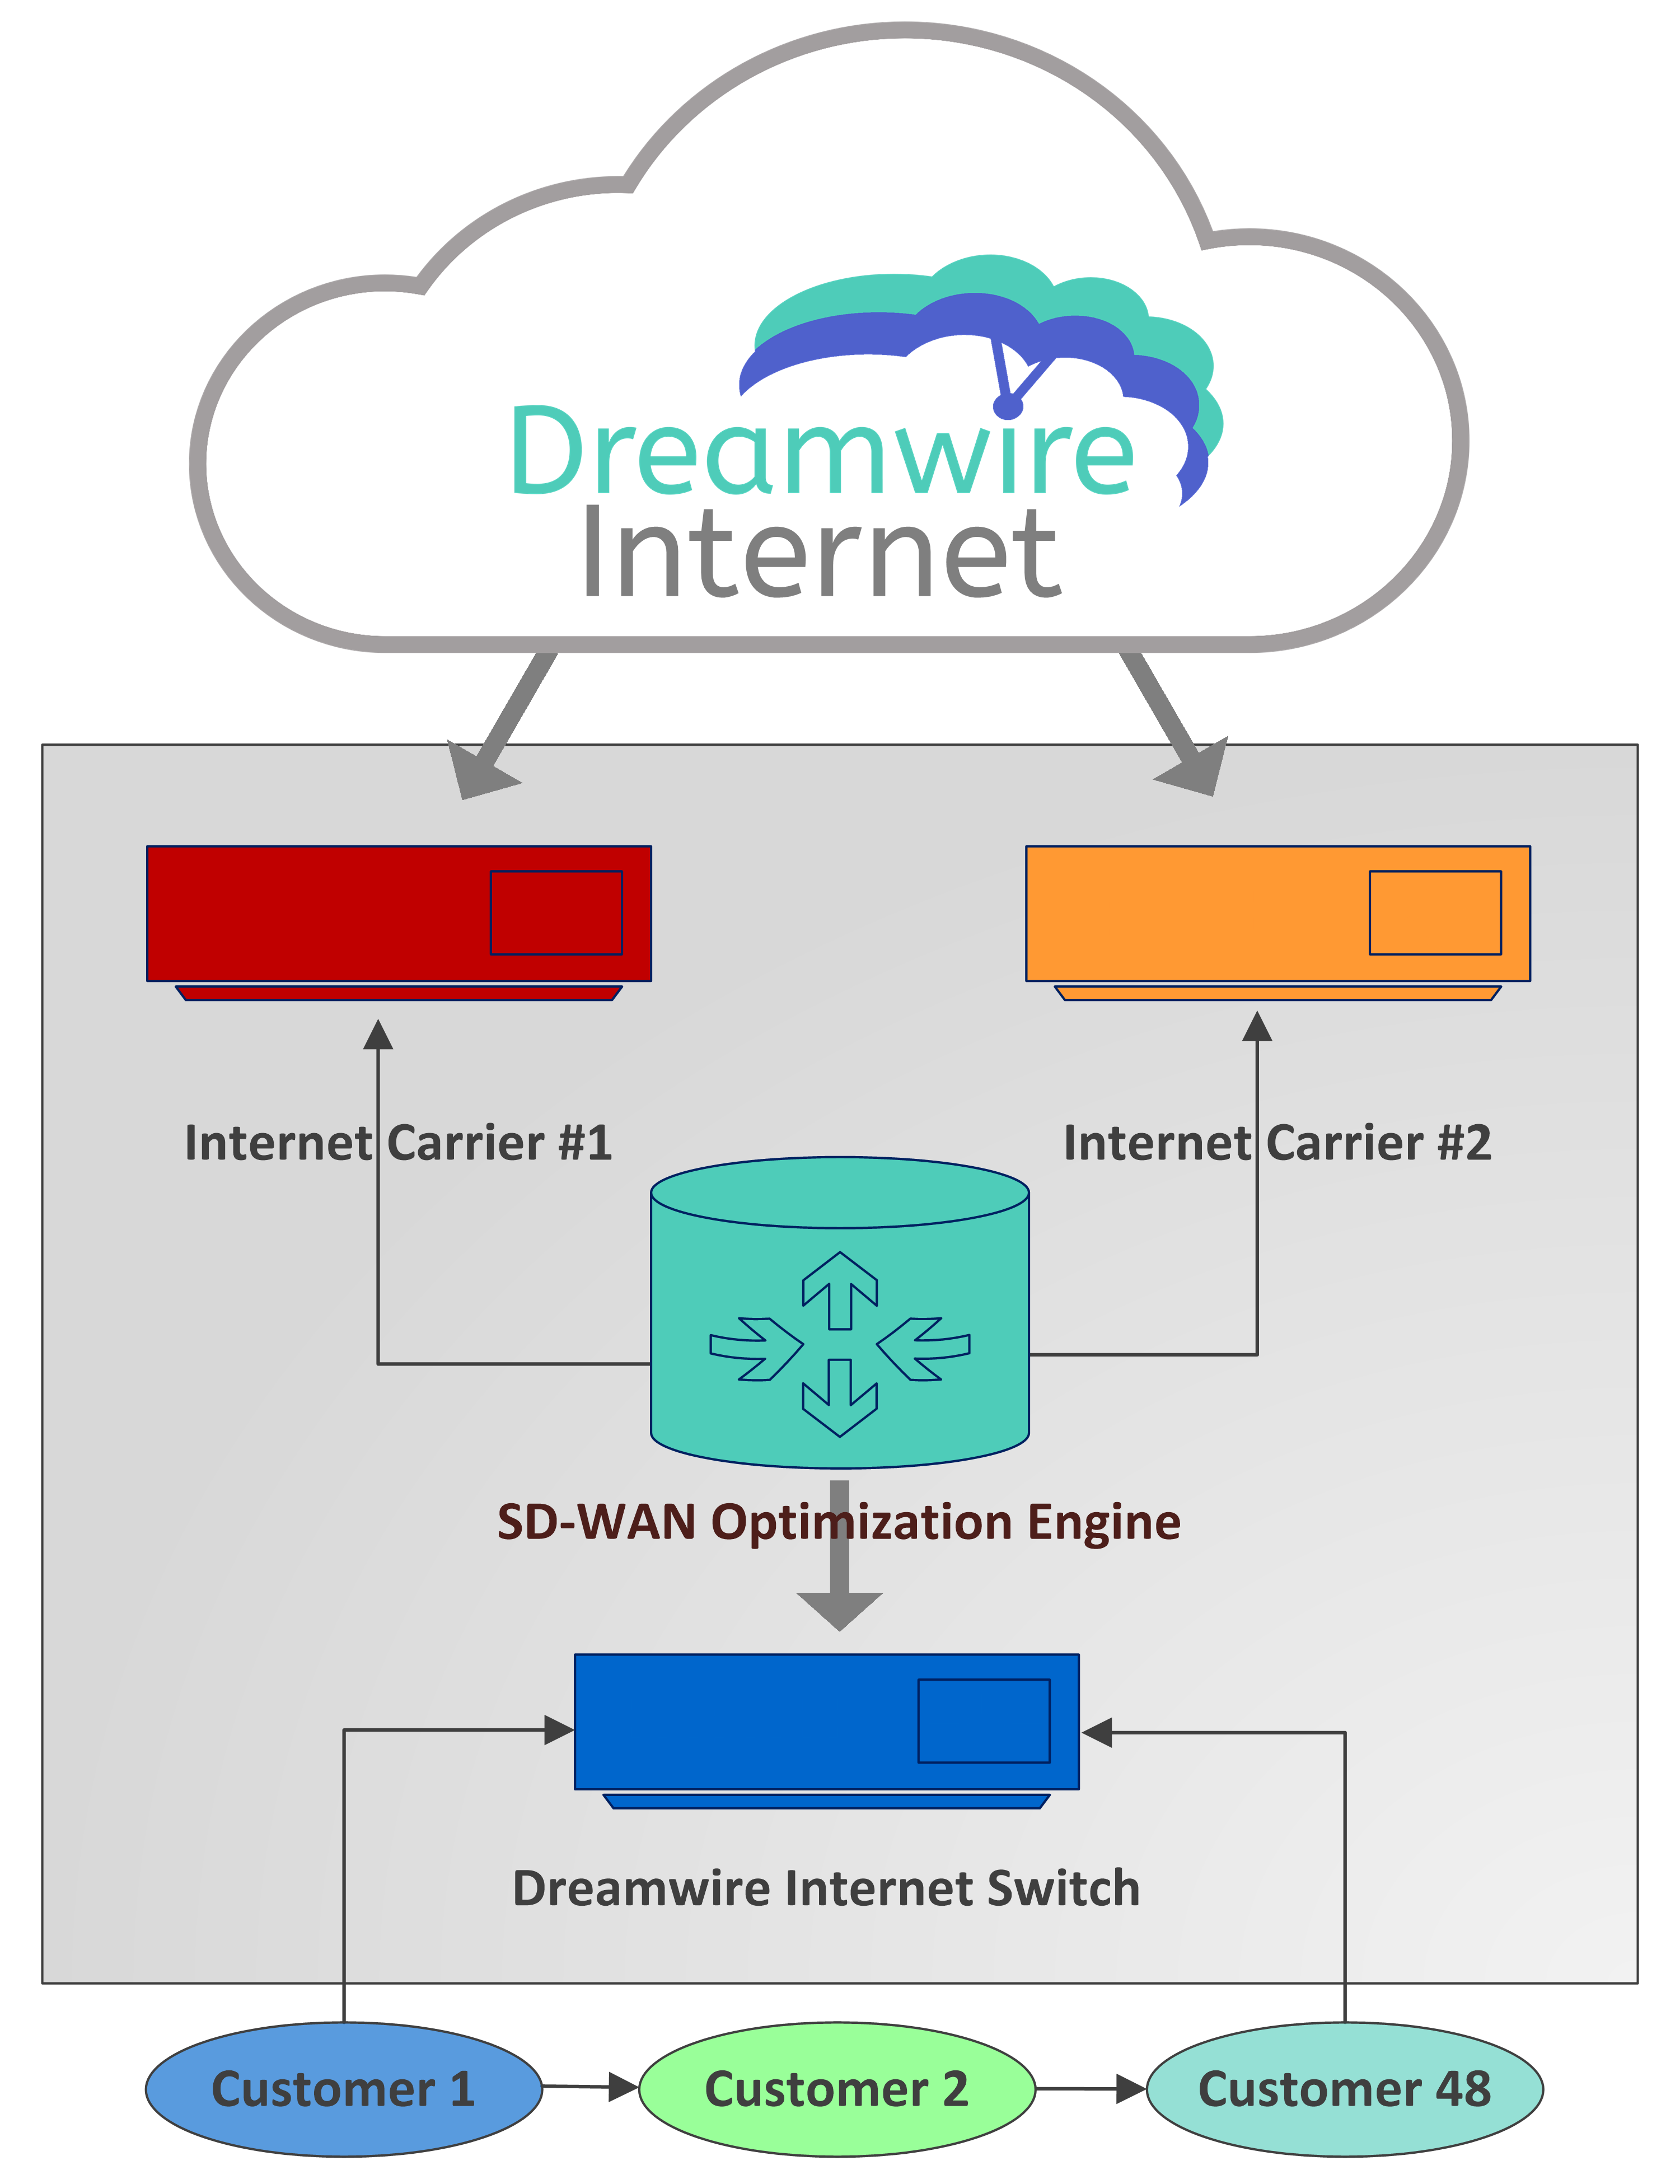 3100 Interstate N Cir Atlanta Ga 30339 Itdreamwire Engine Diagram When Used As Part Of A Redundant Internet Connection Scheme It Can Optimize Traffic Prioritize Business Services Provide Seamless Fail Over Offer Better